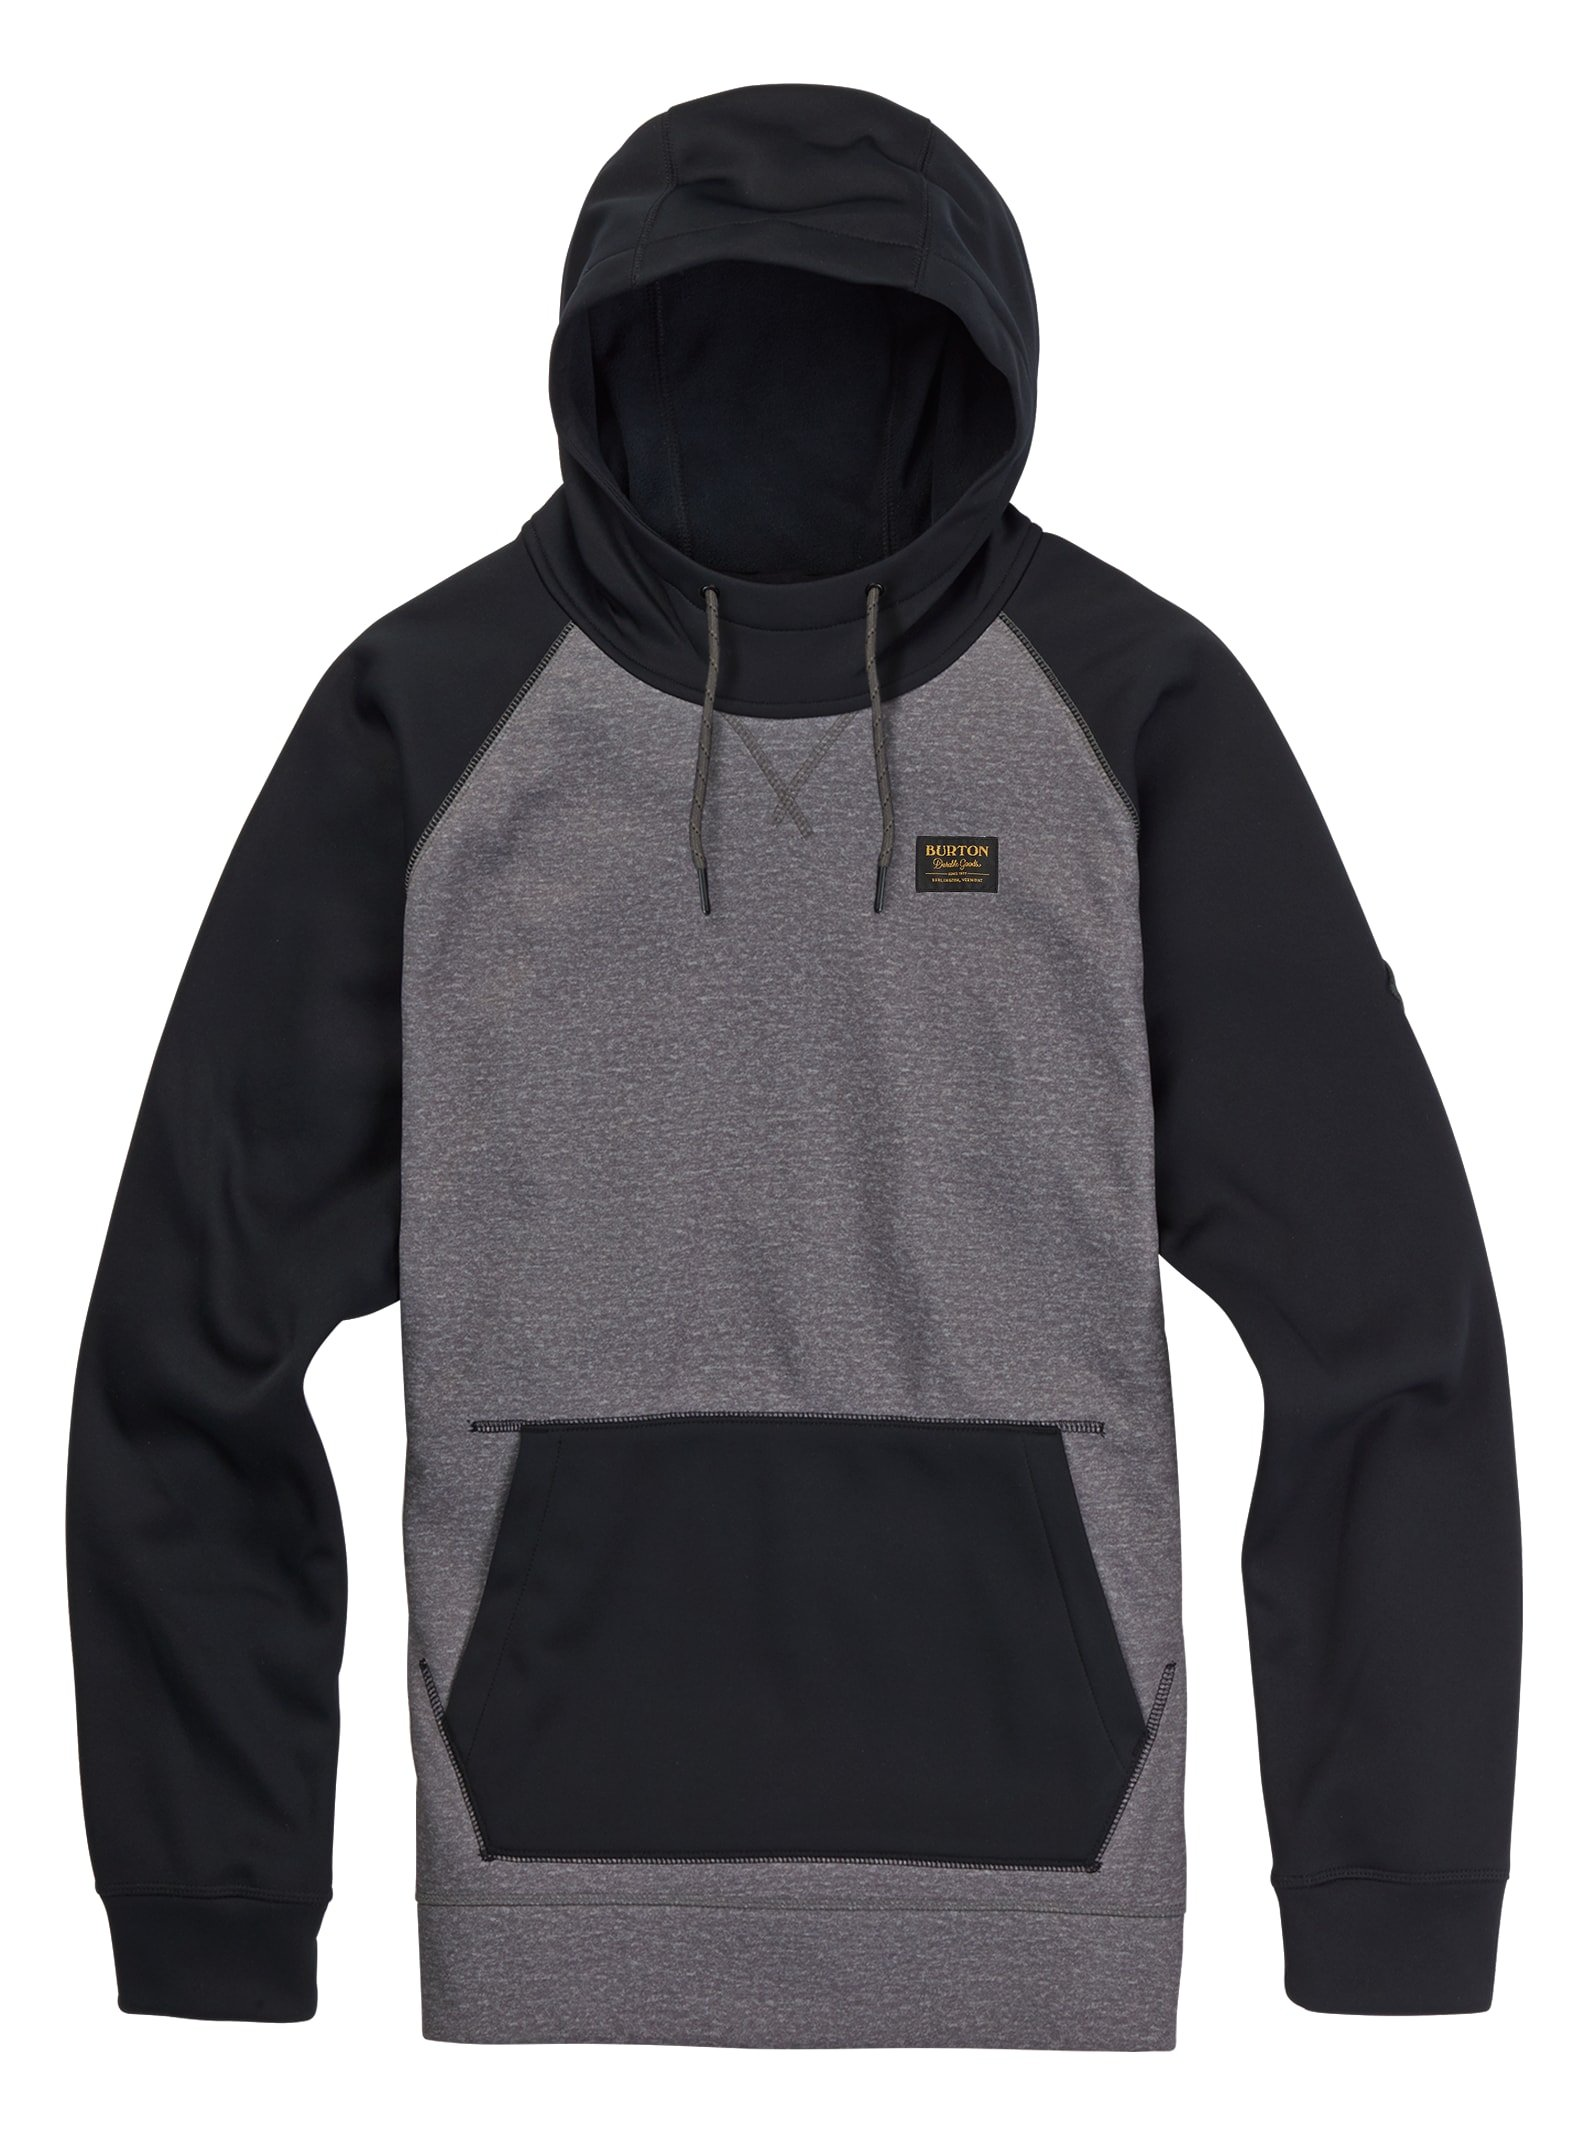 Burton Crown Bonded Pullover Hoodie, Monument Heather, Large